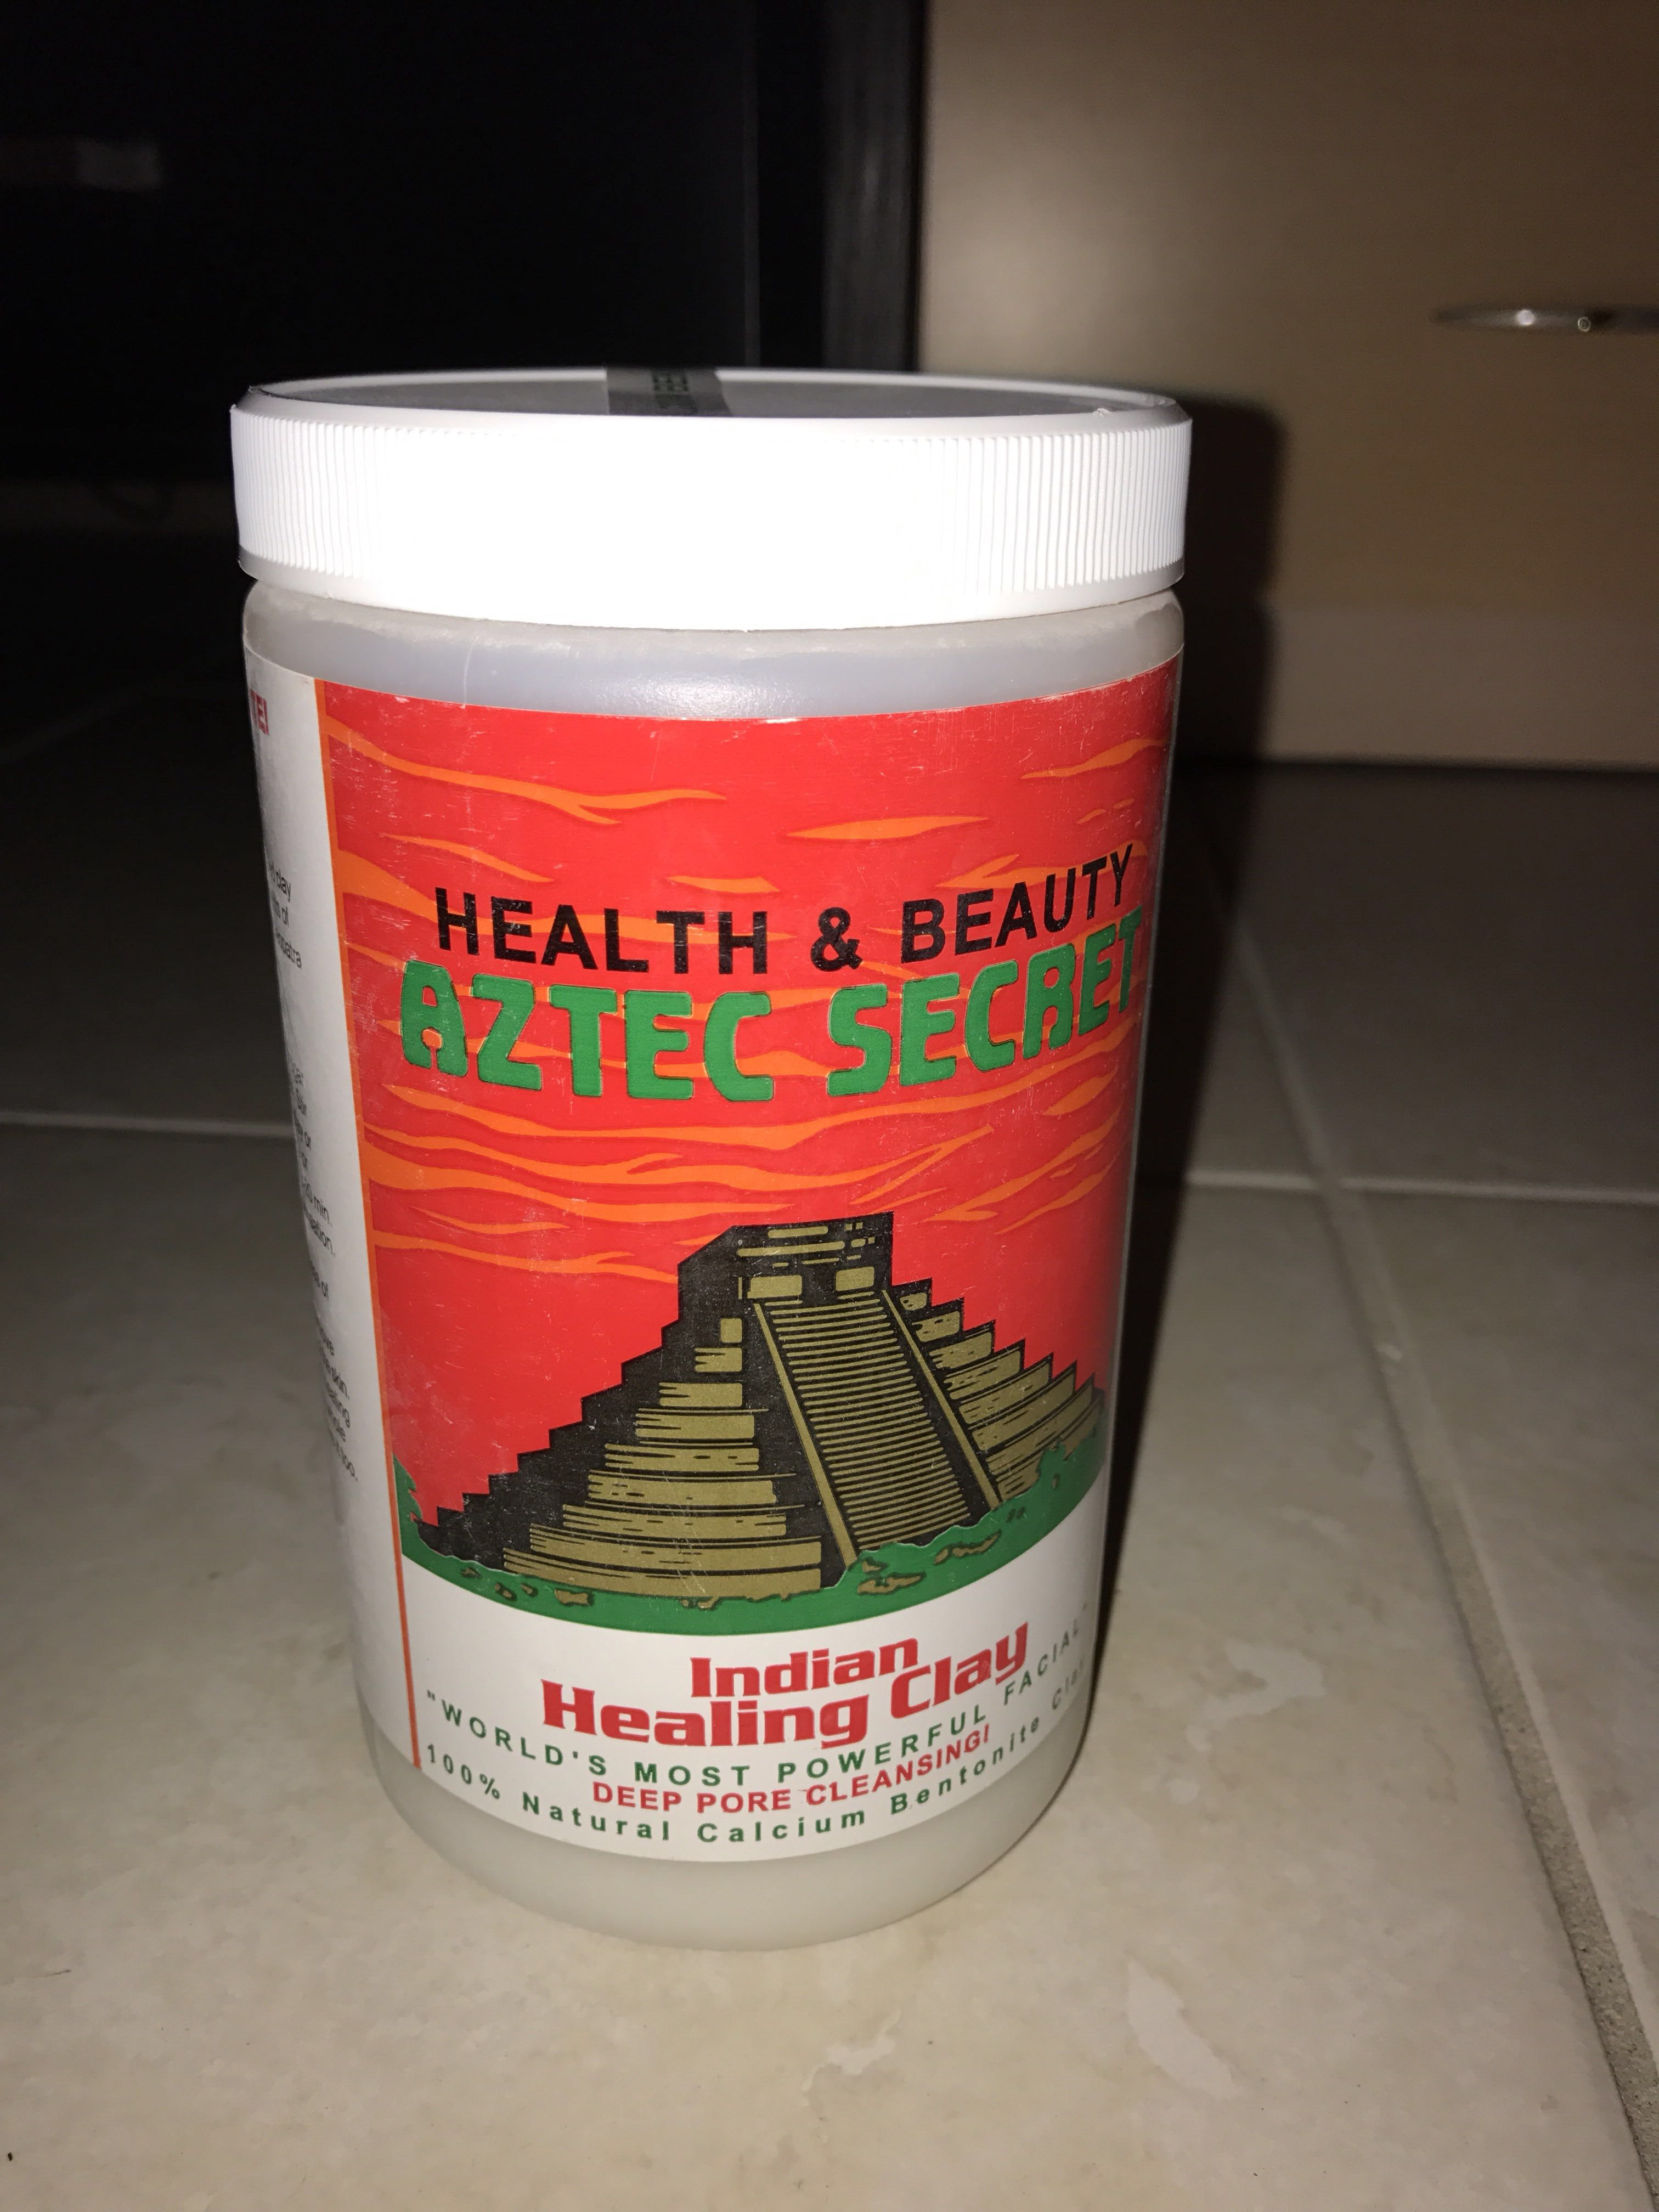 Aztec secret Indian cleaning clay